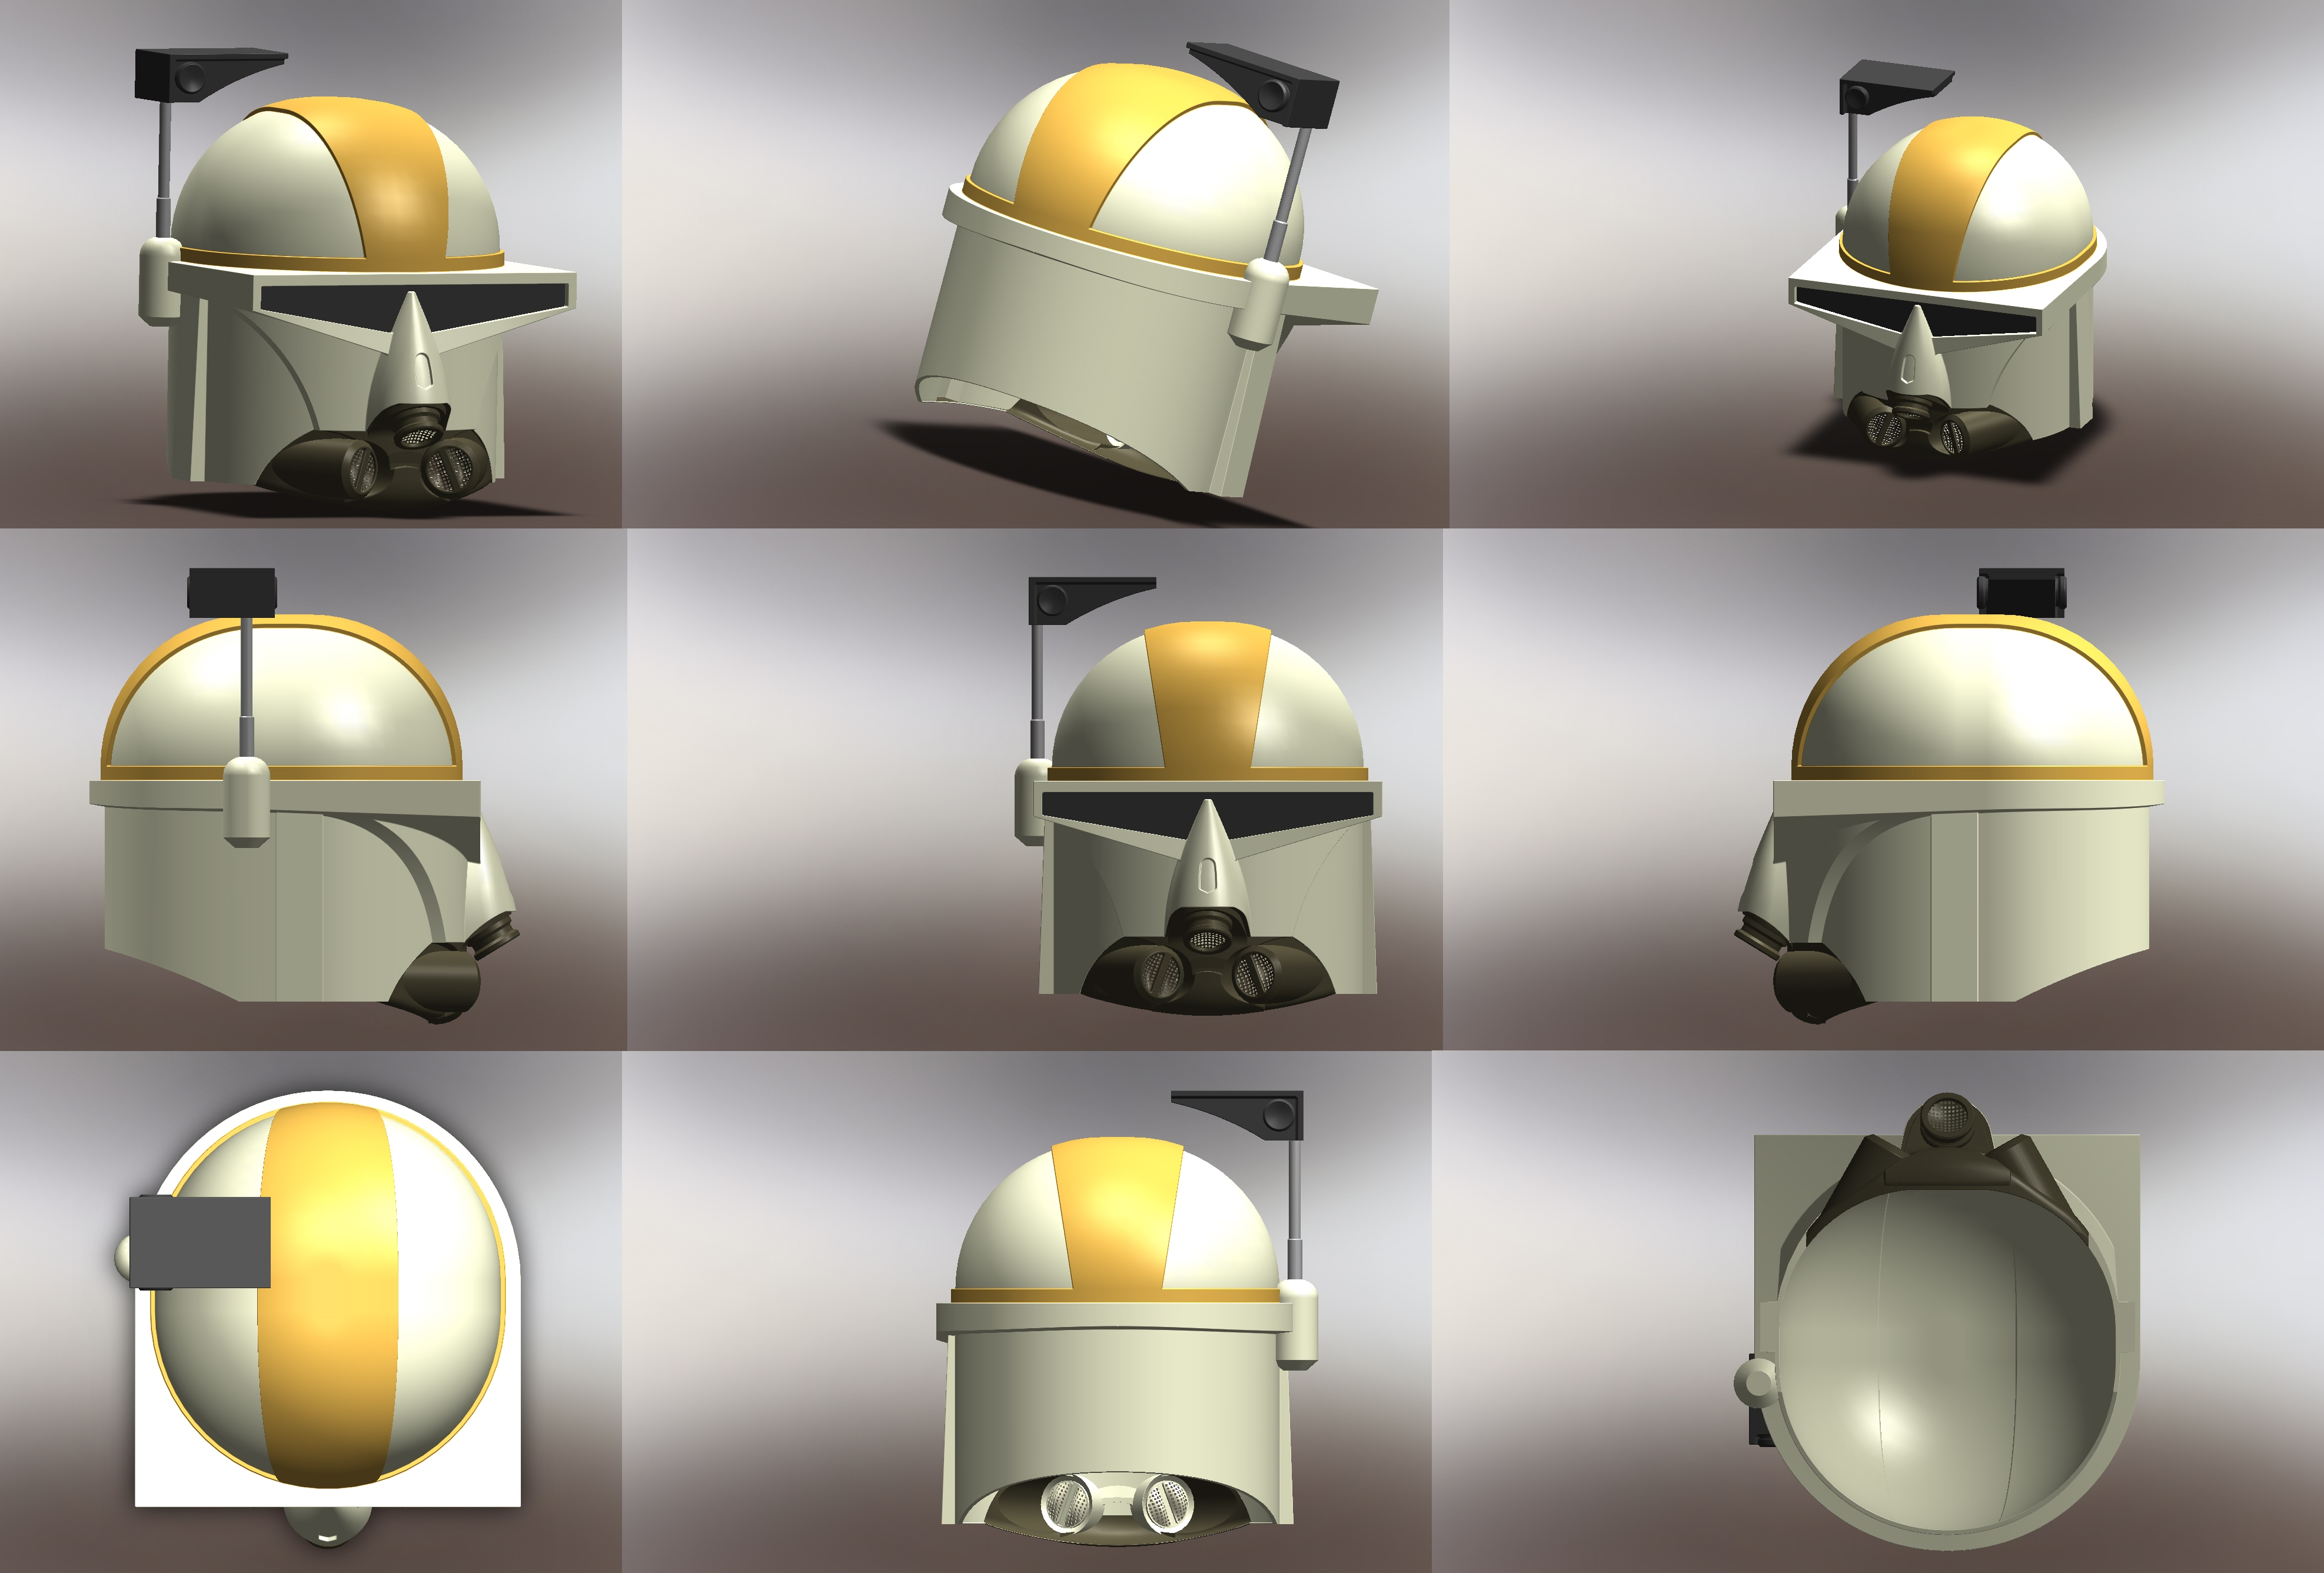 Rako_Hardeen_Helmet_Rev_7_Views_2015.jpg